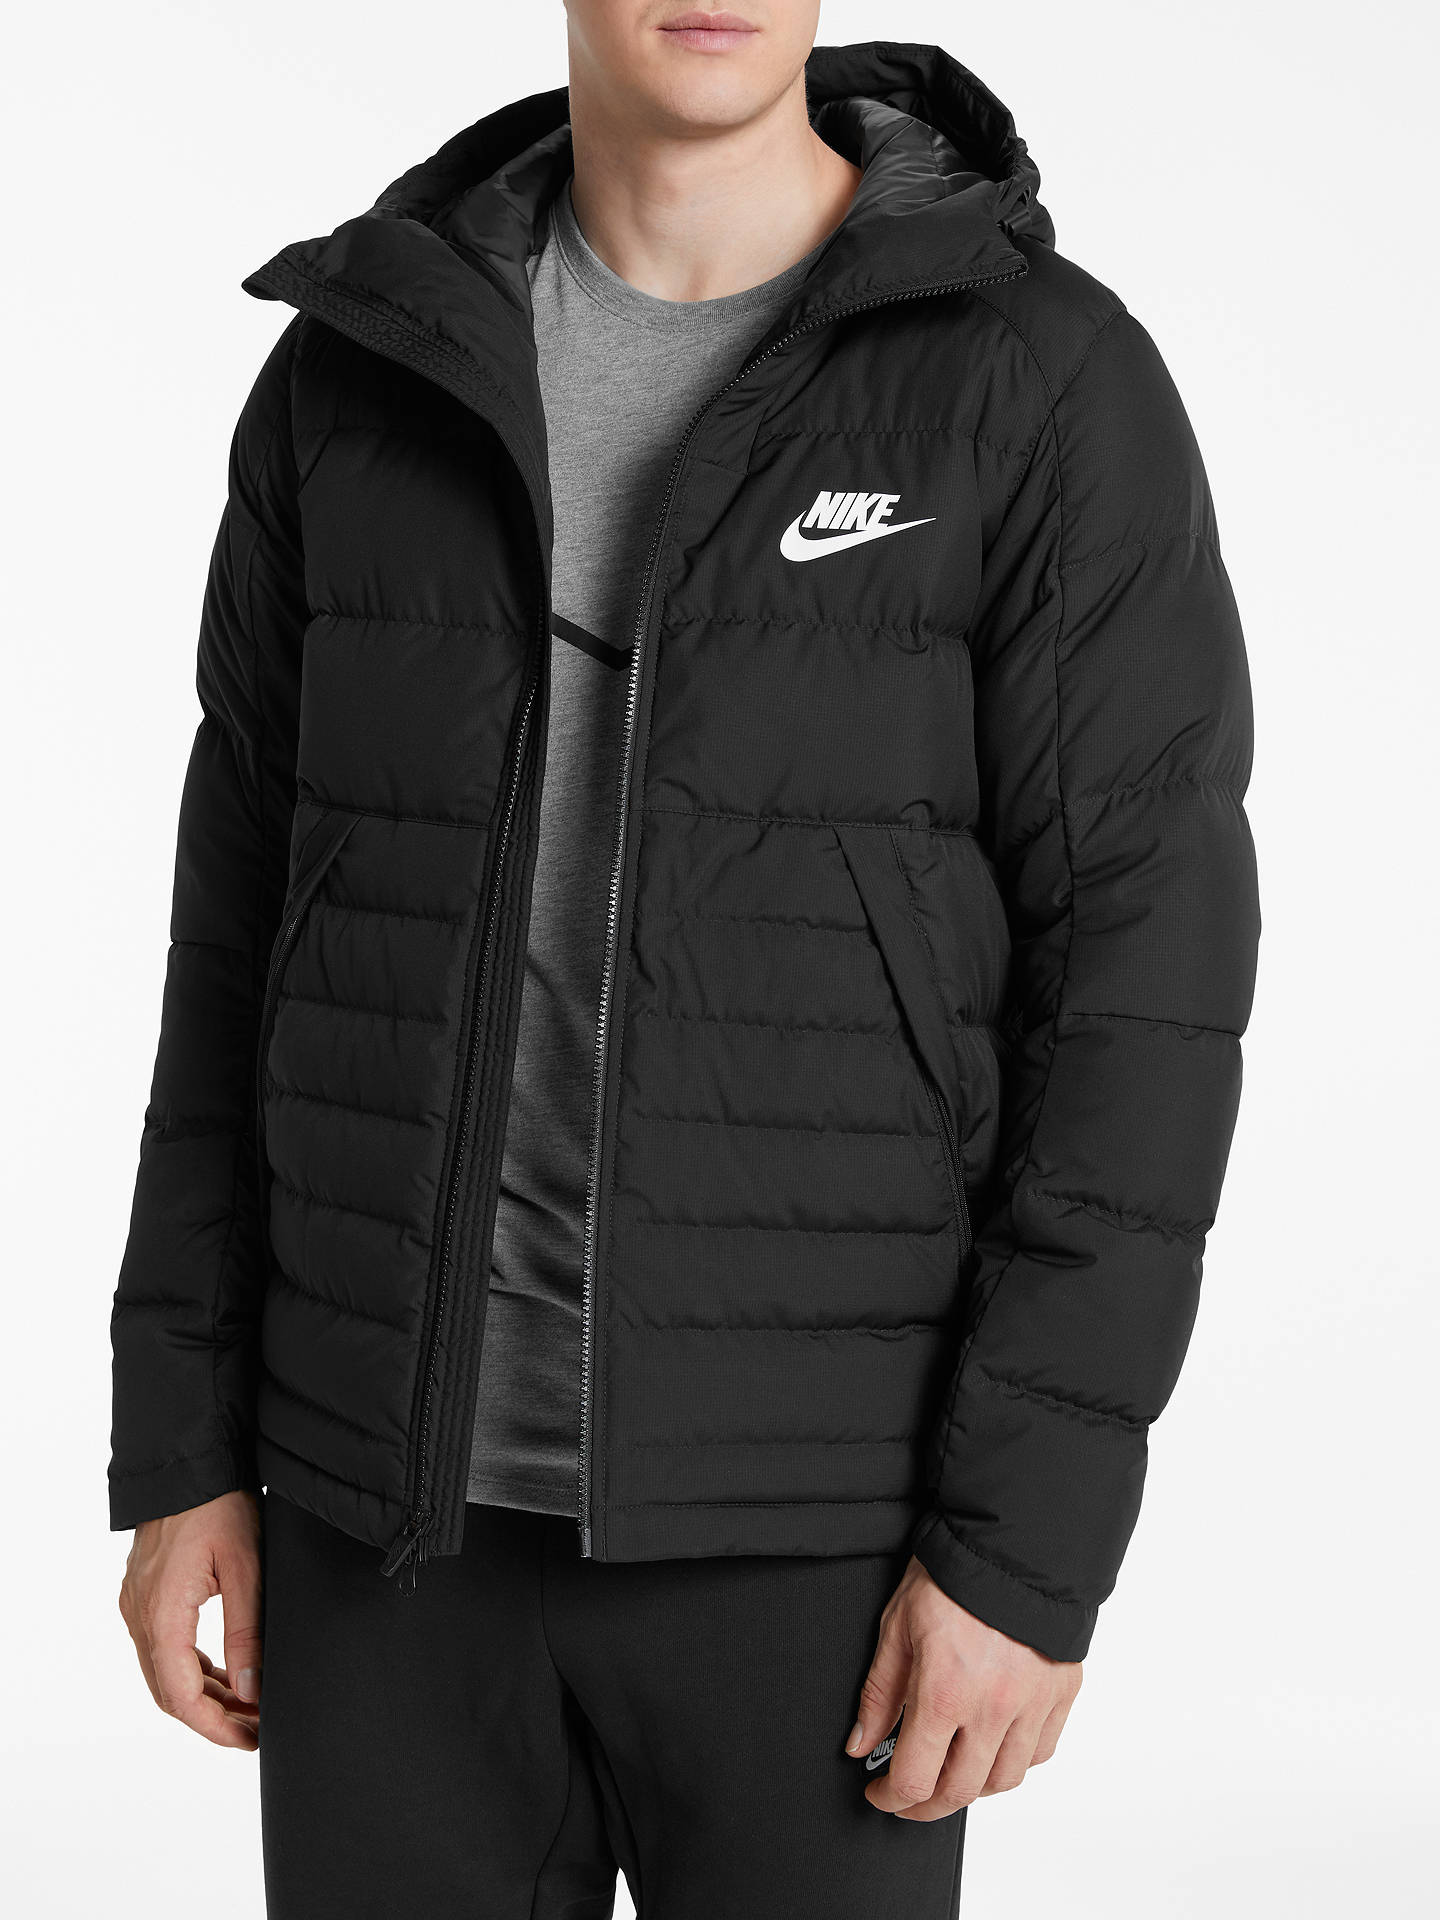 94f323e35c24 Buy Nike Sportswear Down Insulated Jacket